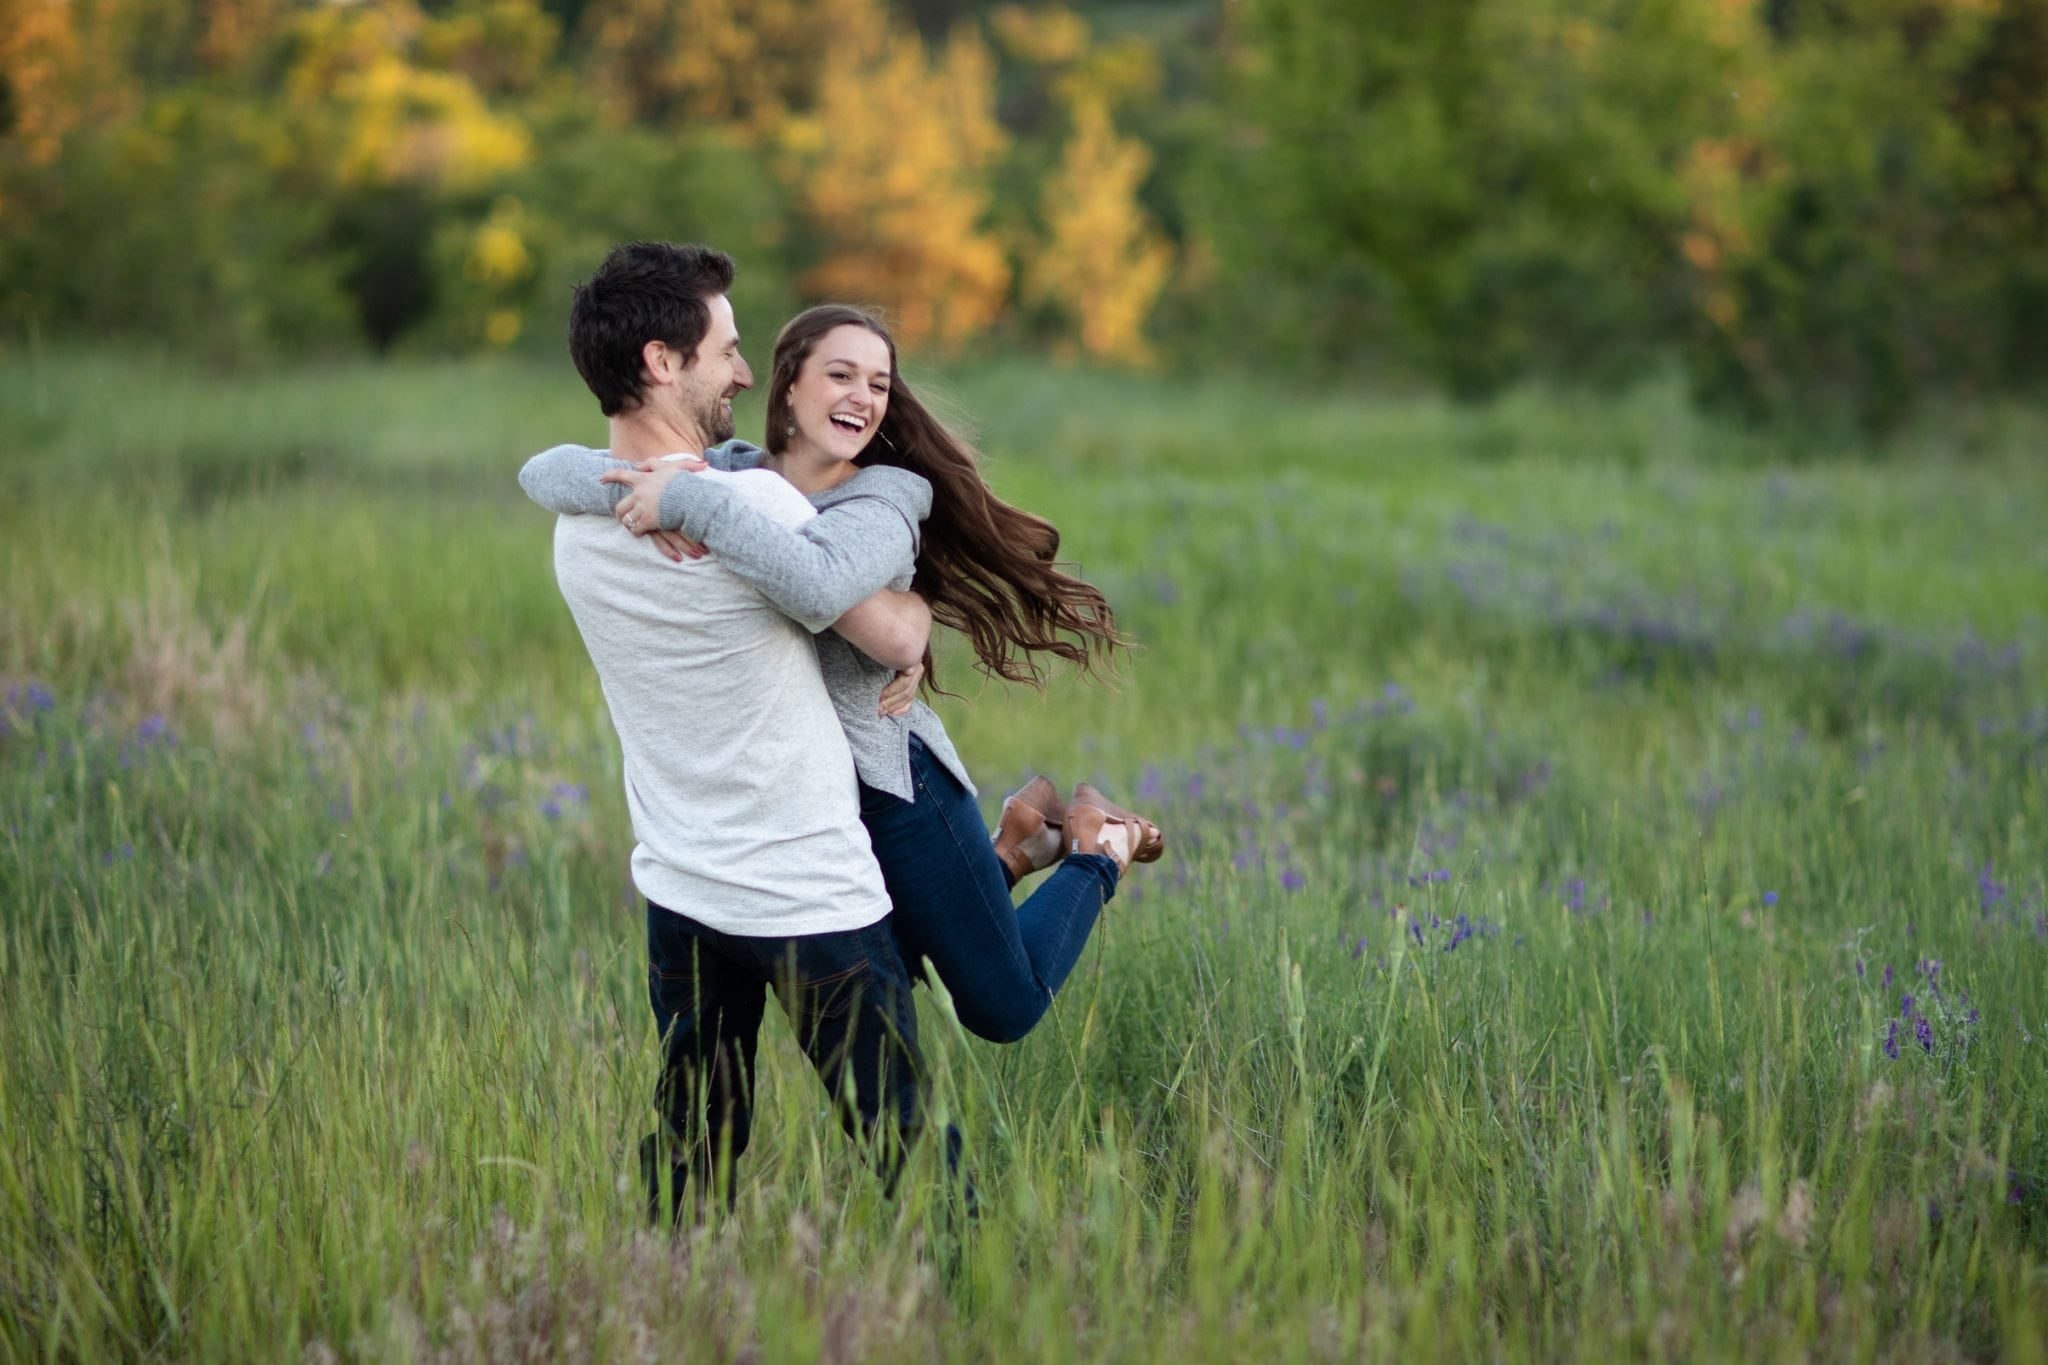 Fun engagment photos